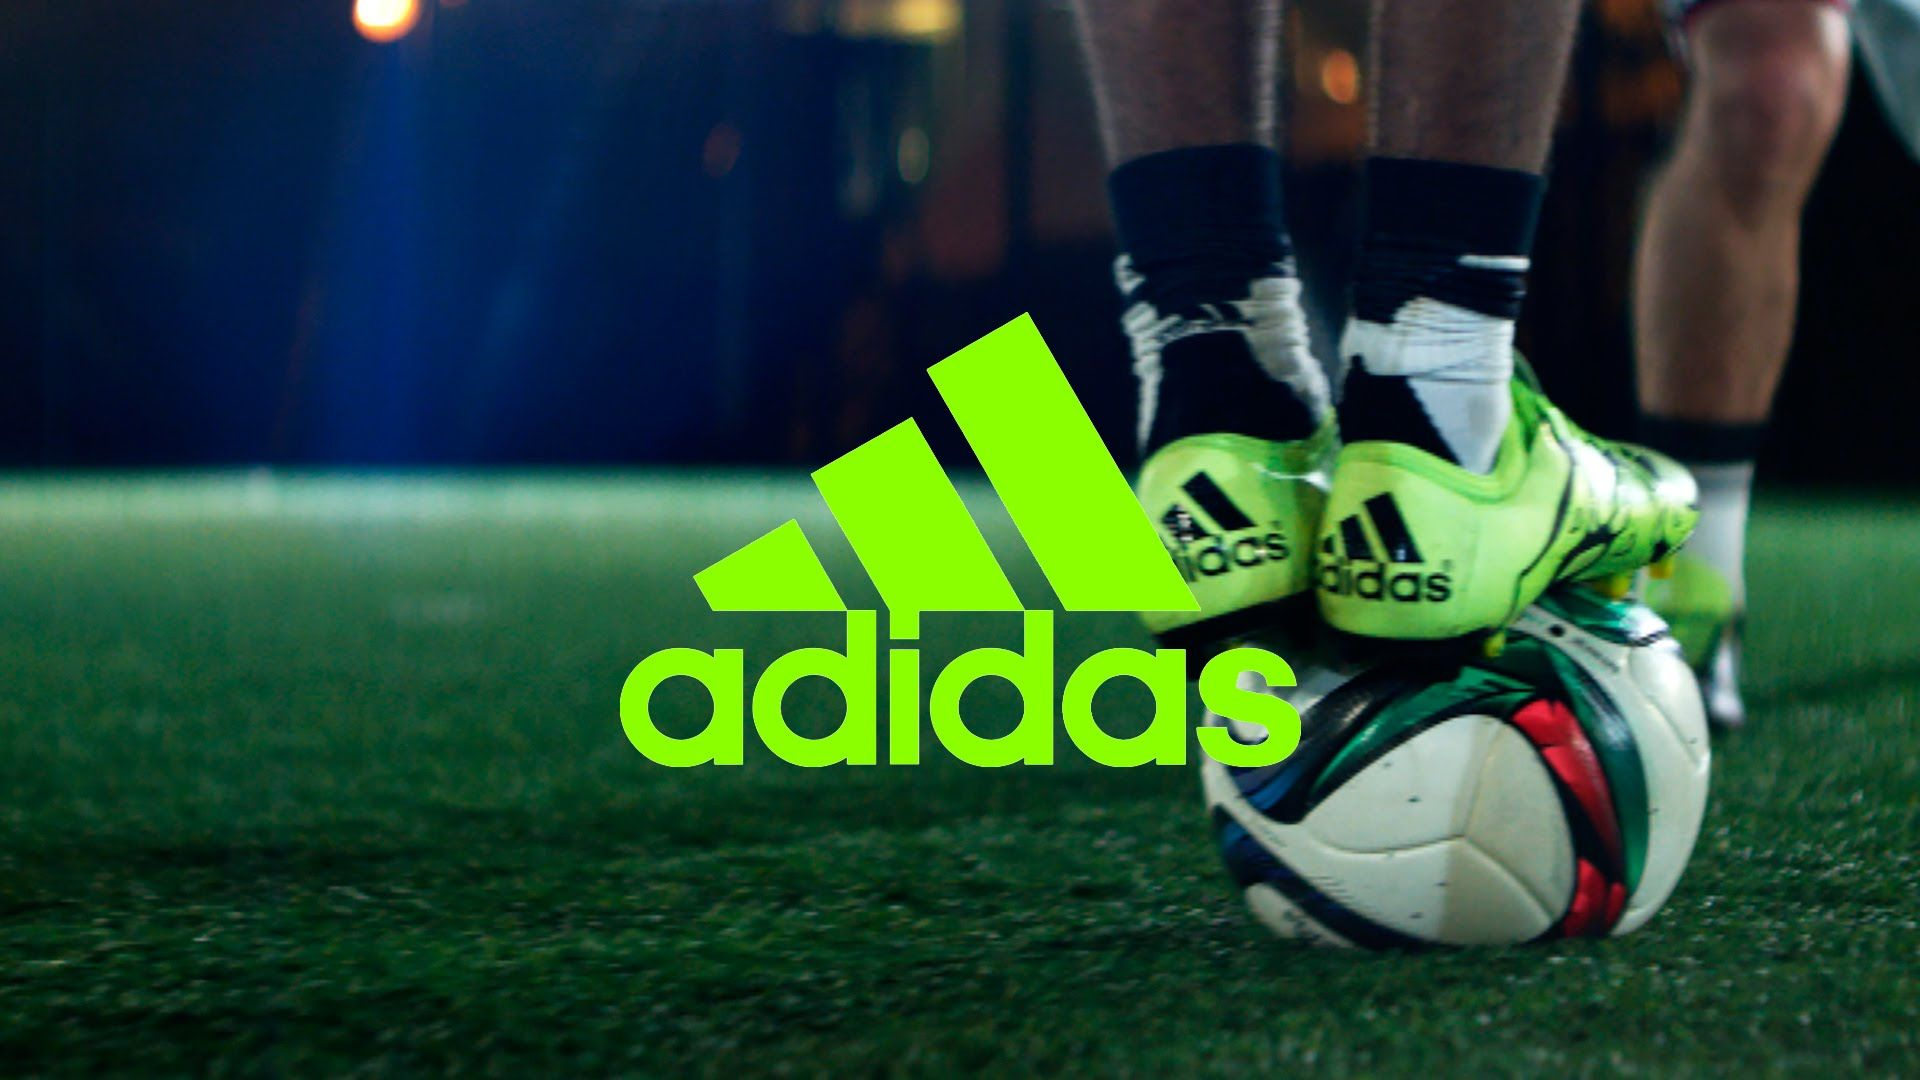 Adidas Soccer Wallpaper High Definition Is 4K Wallpaper> Yodobi